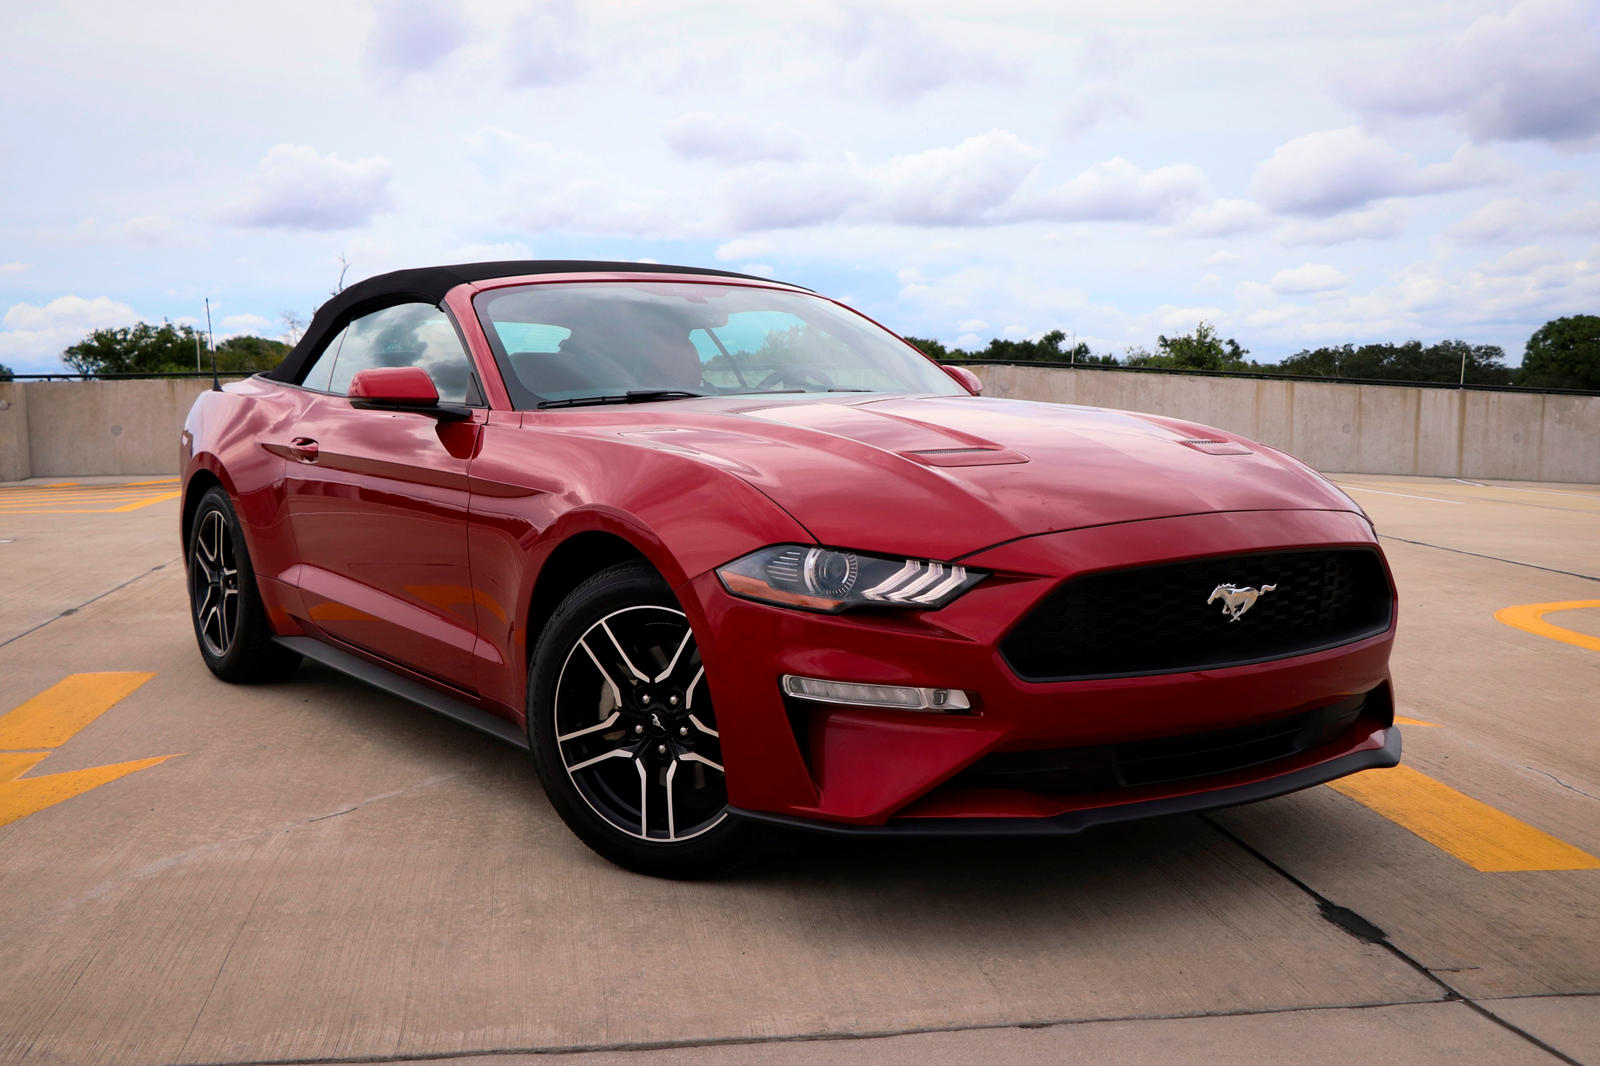 2019 Ford Mustang Convertible Review Trims Specs Price New Interior Features Exterior Design And Specifications Carbuzz